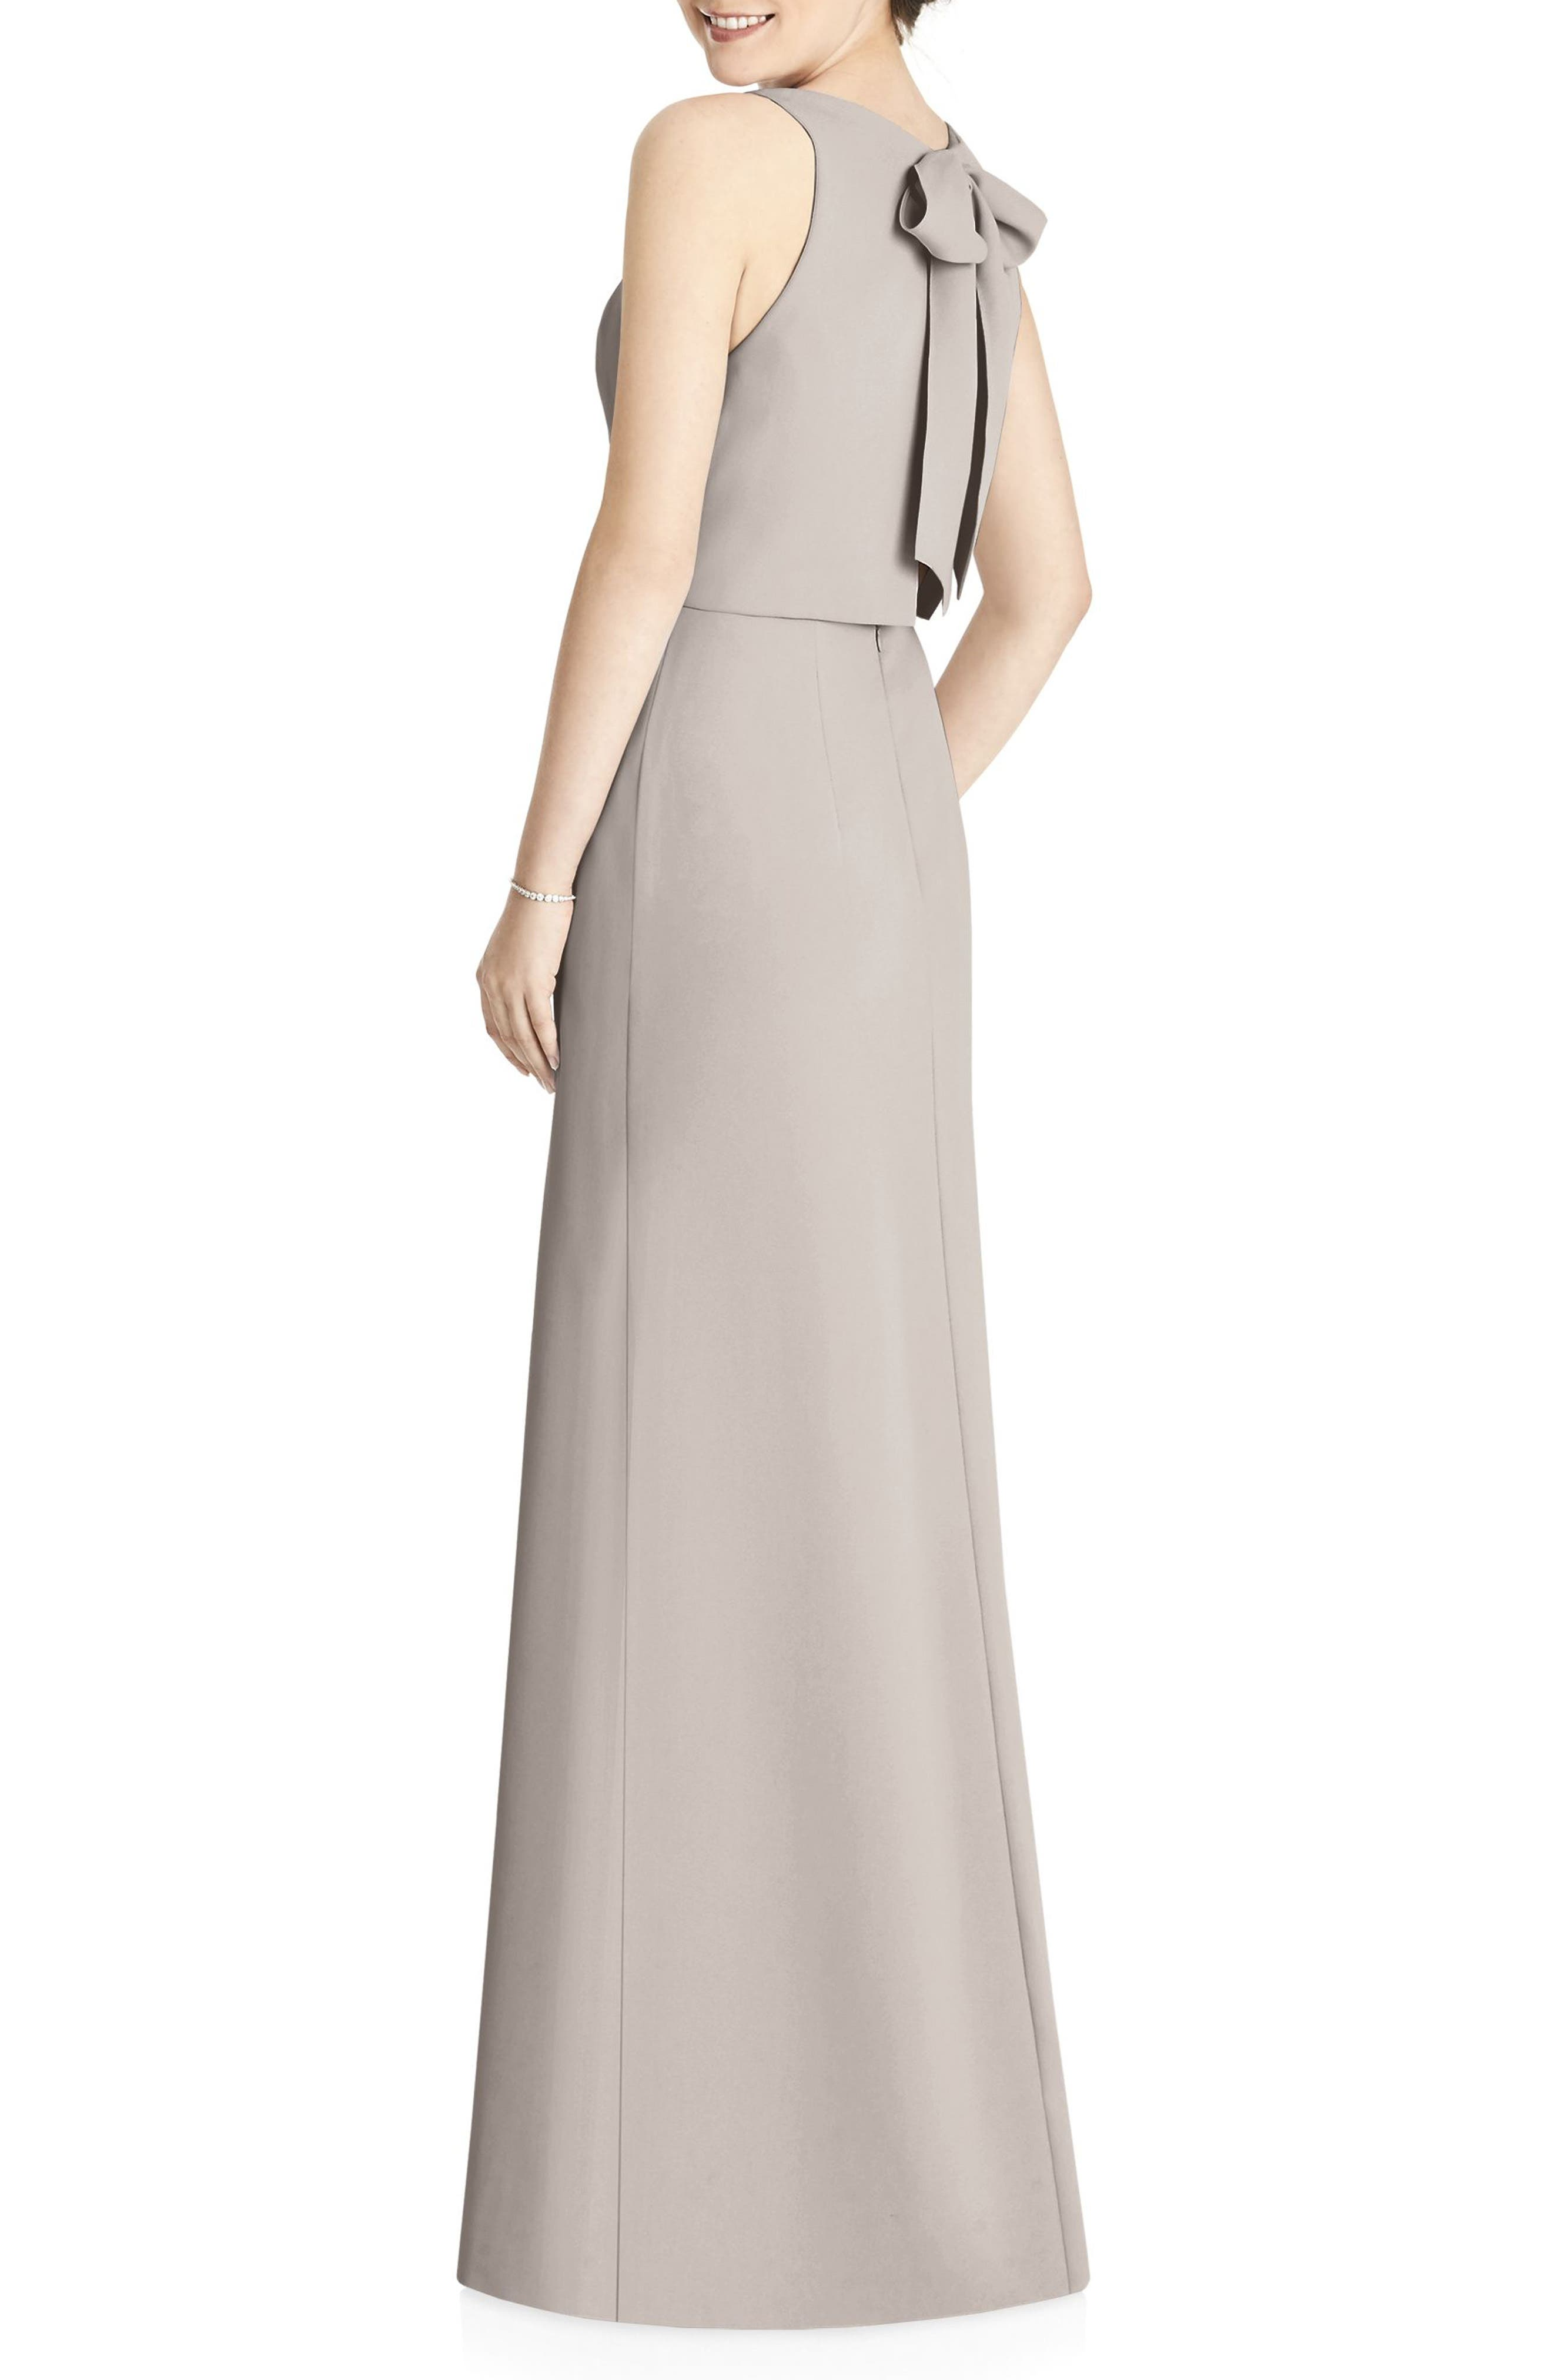 JY JENNY YOO, Tie Back Crepe Gown, Alternate thumbnail 2, color, TAUPE